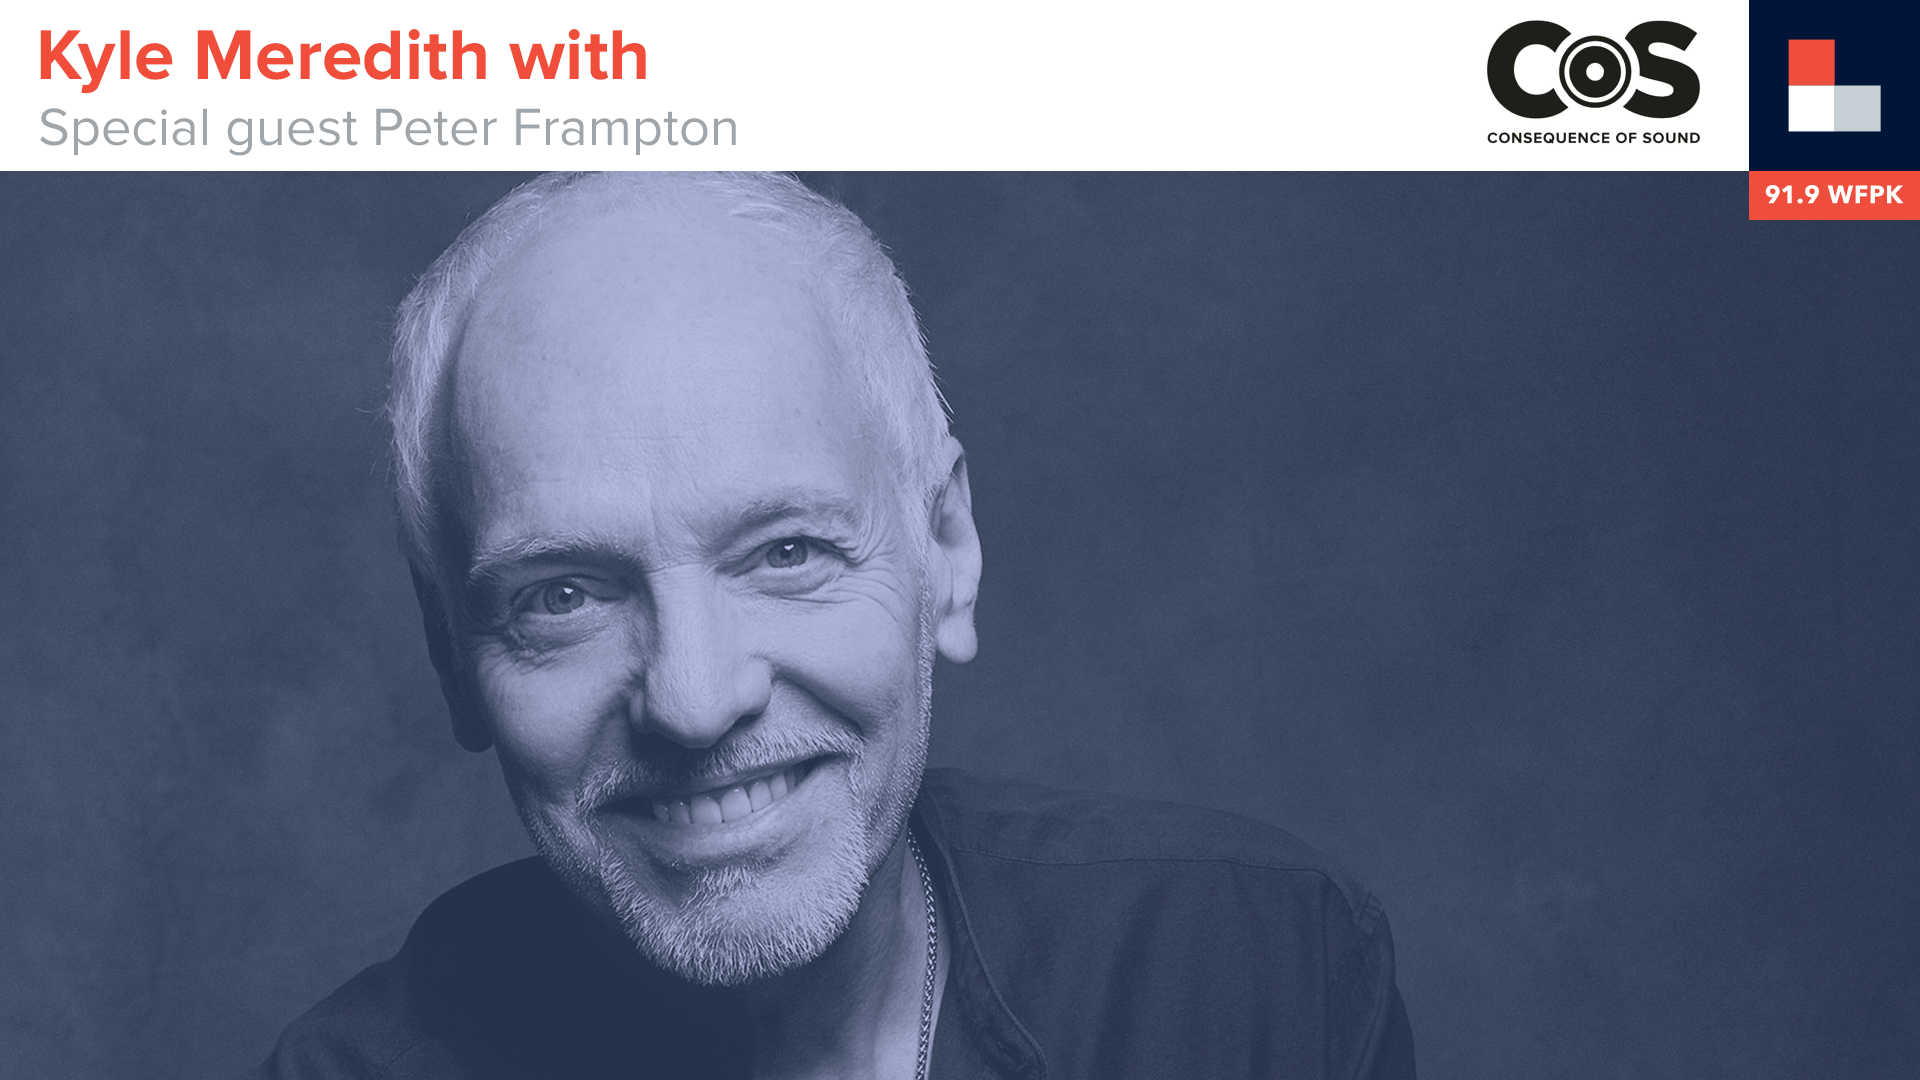 kyle meredith with peter frampton interview podcast consequence of sound. Black Bedroom Furniture Sets. Home Design Ideas